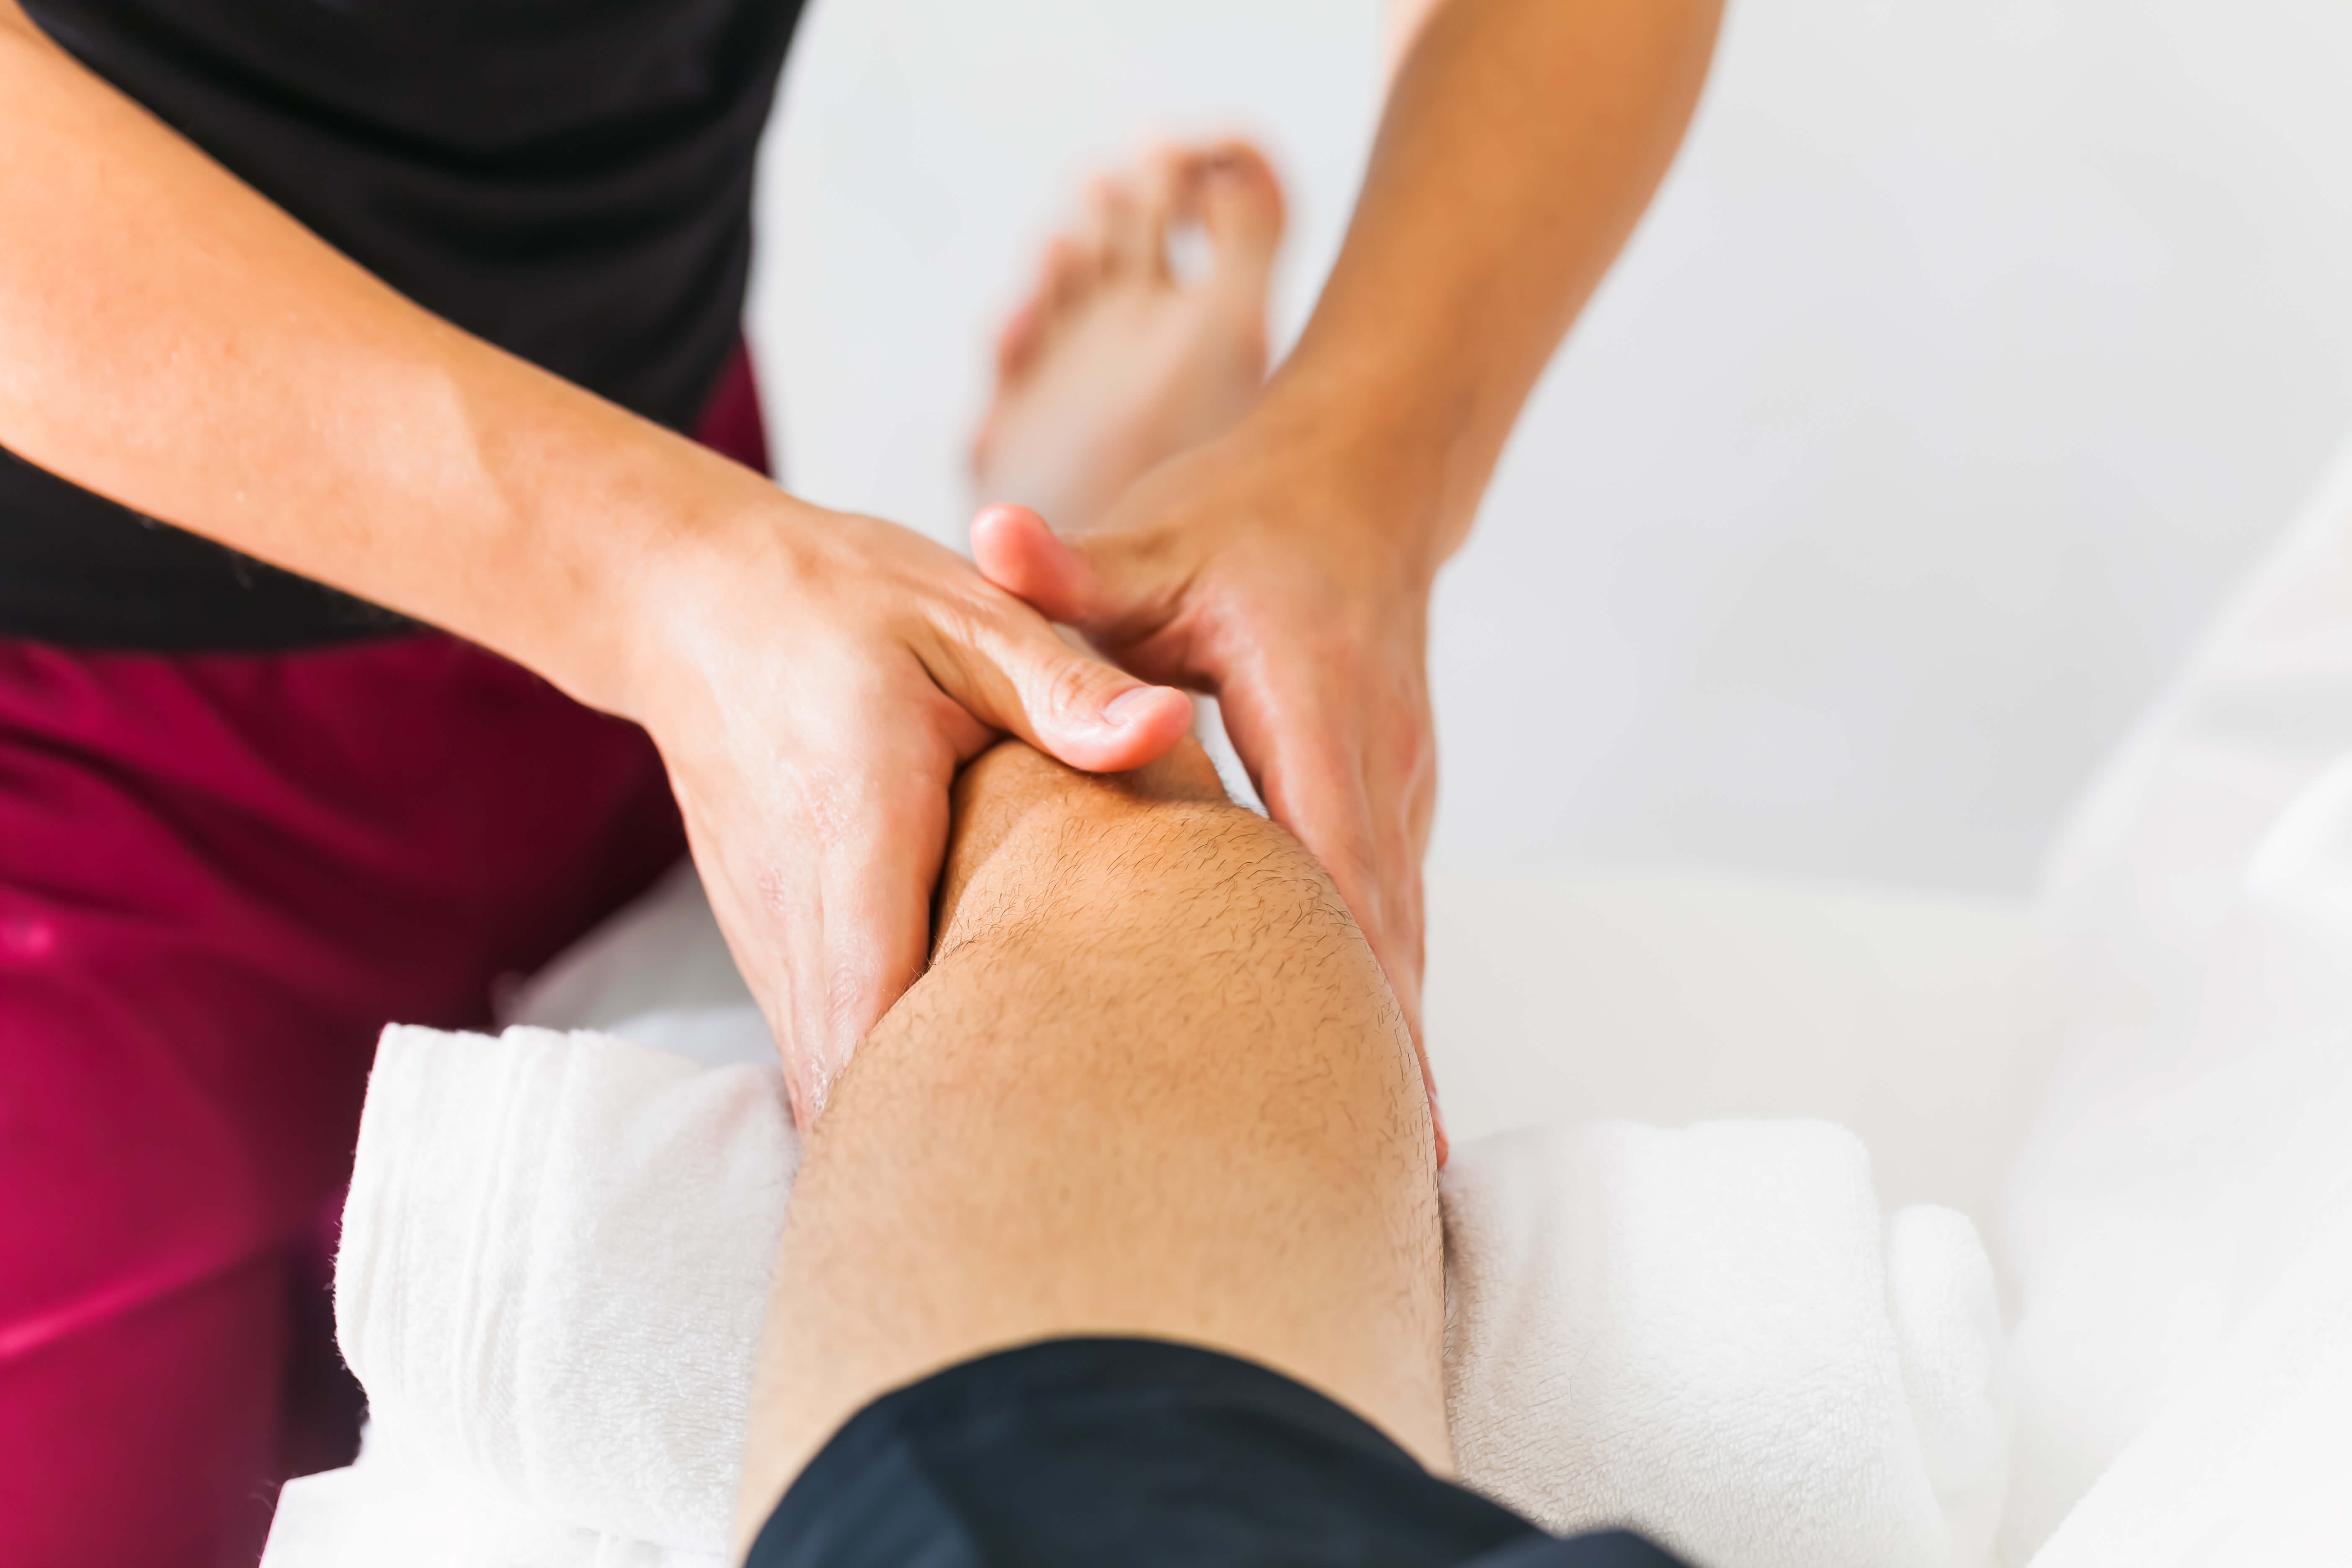 To Address Athletic Injuries, Add Topical Pain Relief to Your...